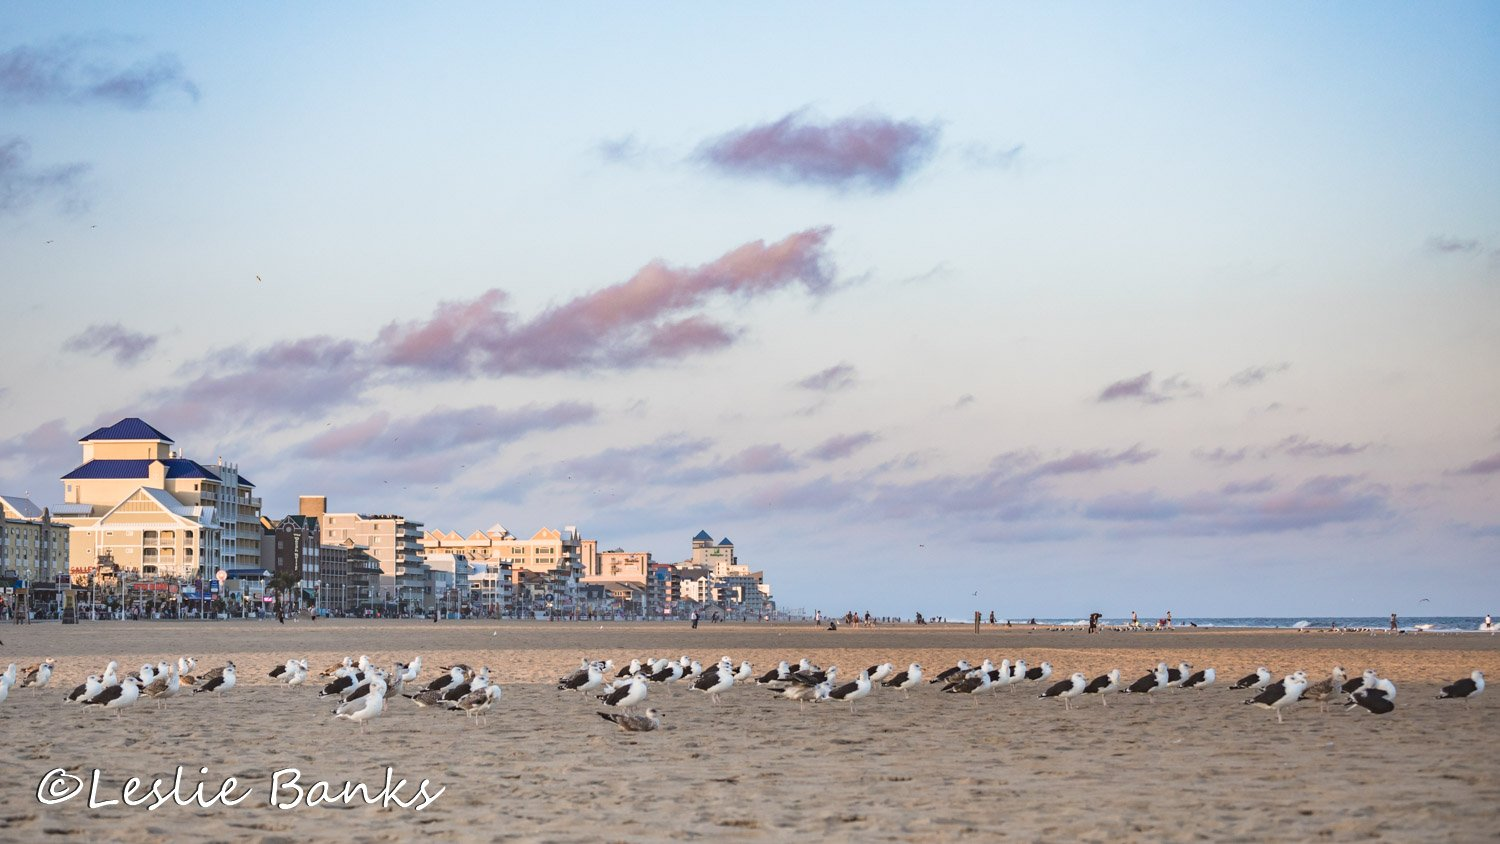 Flock of Seagulls at Ocean CIty Maryland